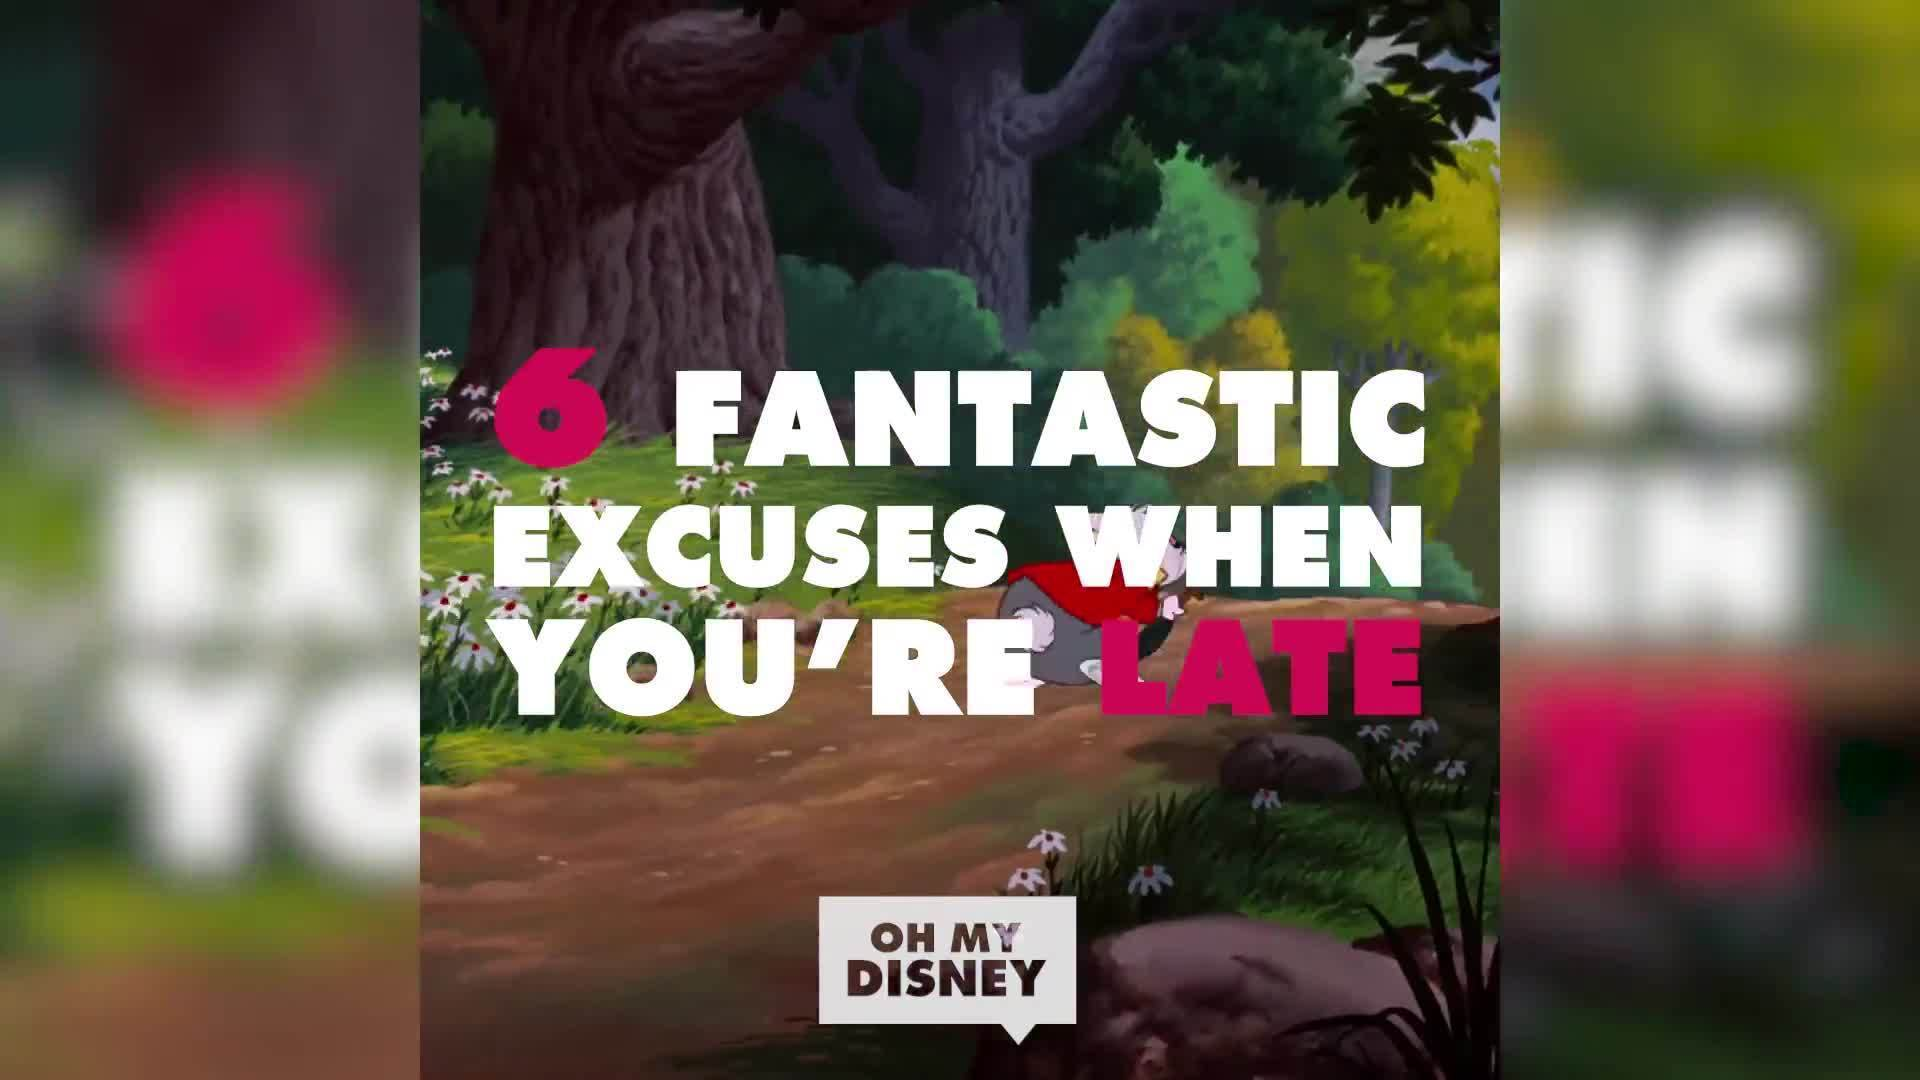 6 Fantastic Excuses When You're Late